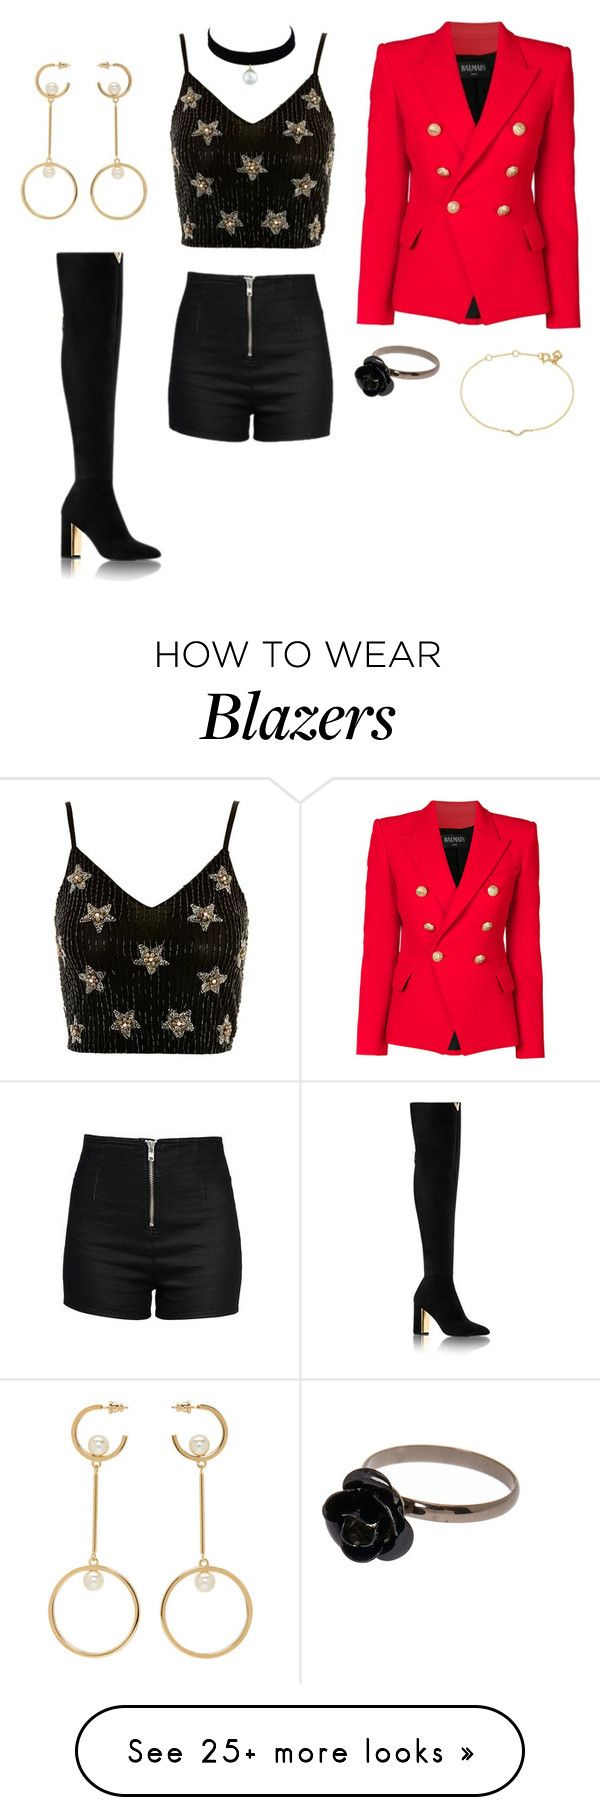 """""""RED VELVET - PEEK-A-BOO - JOY inspiration 1"""" by bhgrace on Polyvore featuring Topshop, Chloé, Balmain and Maya Magal"""